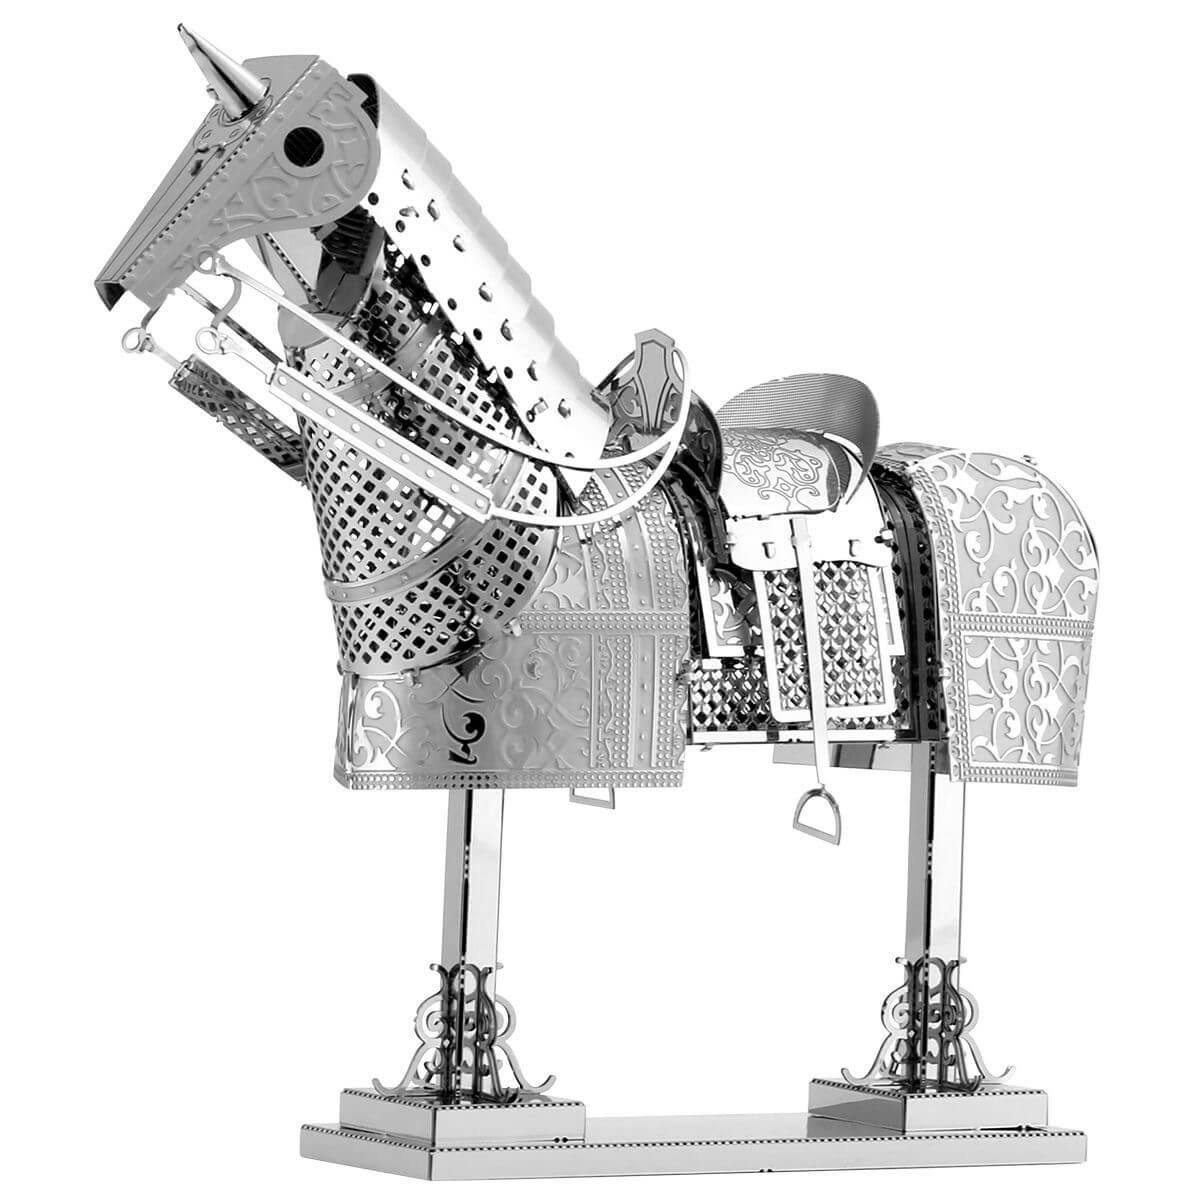 Fascinations Horse Armor Metal Earth Model Kit - Scale 1:43